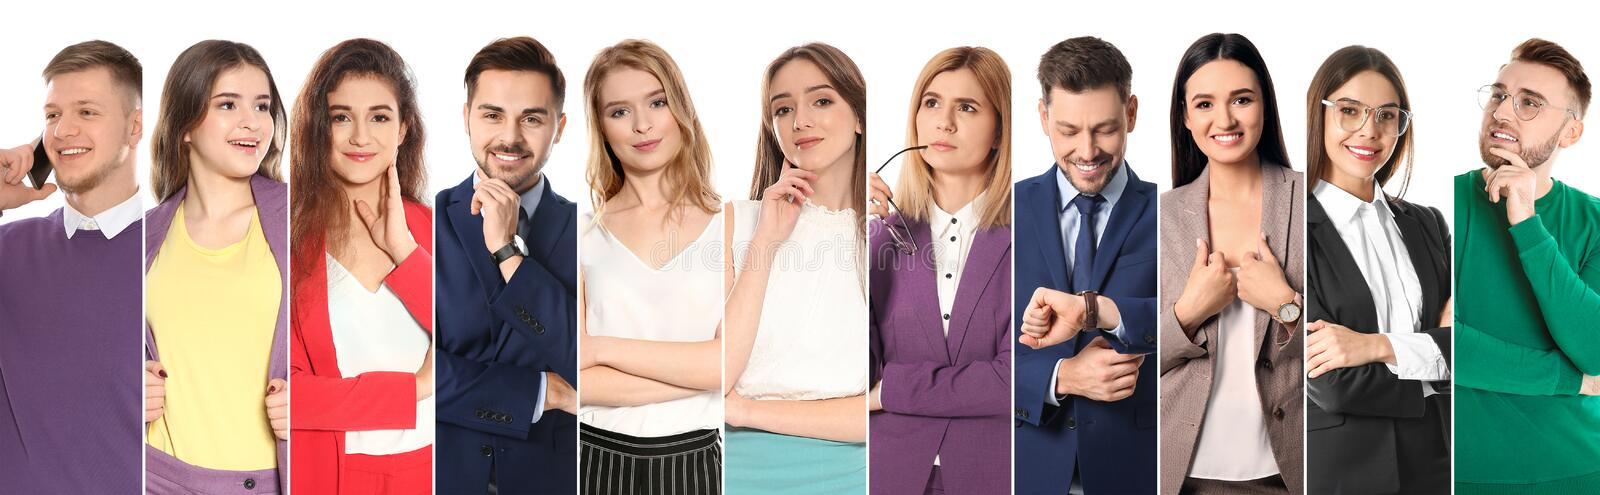 Collage of attractive people on white background. Banner design stock photo